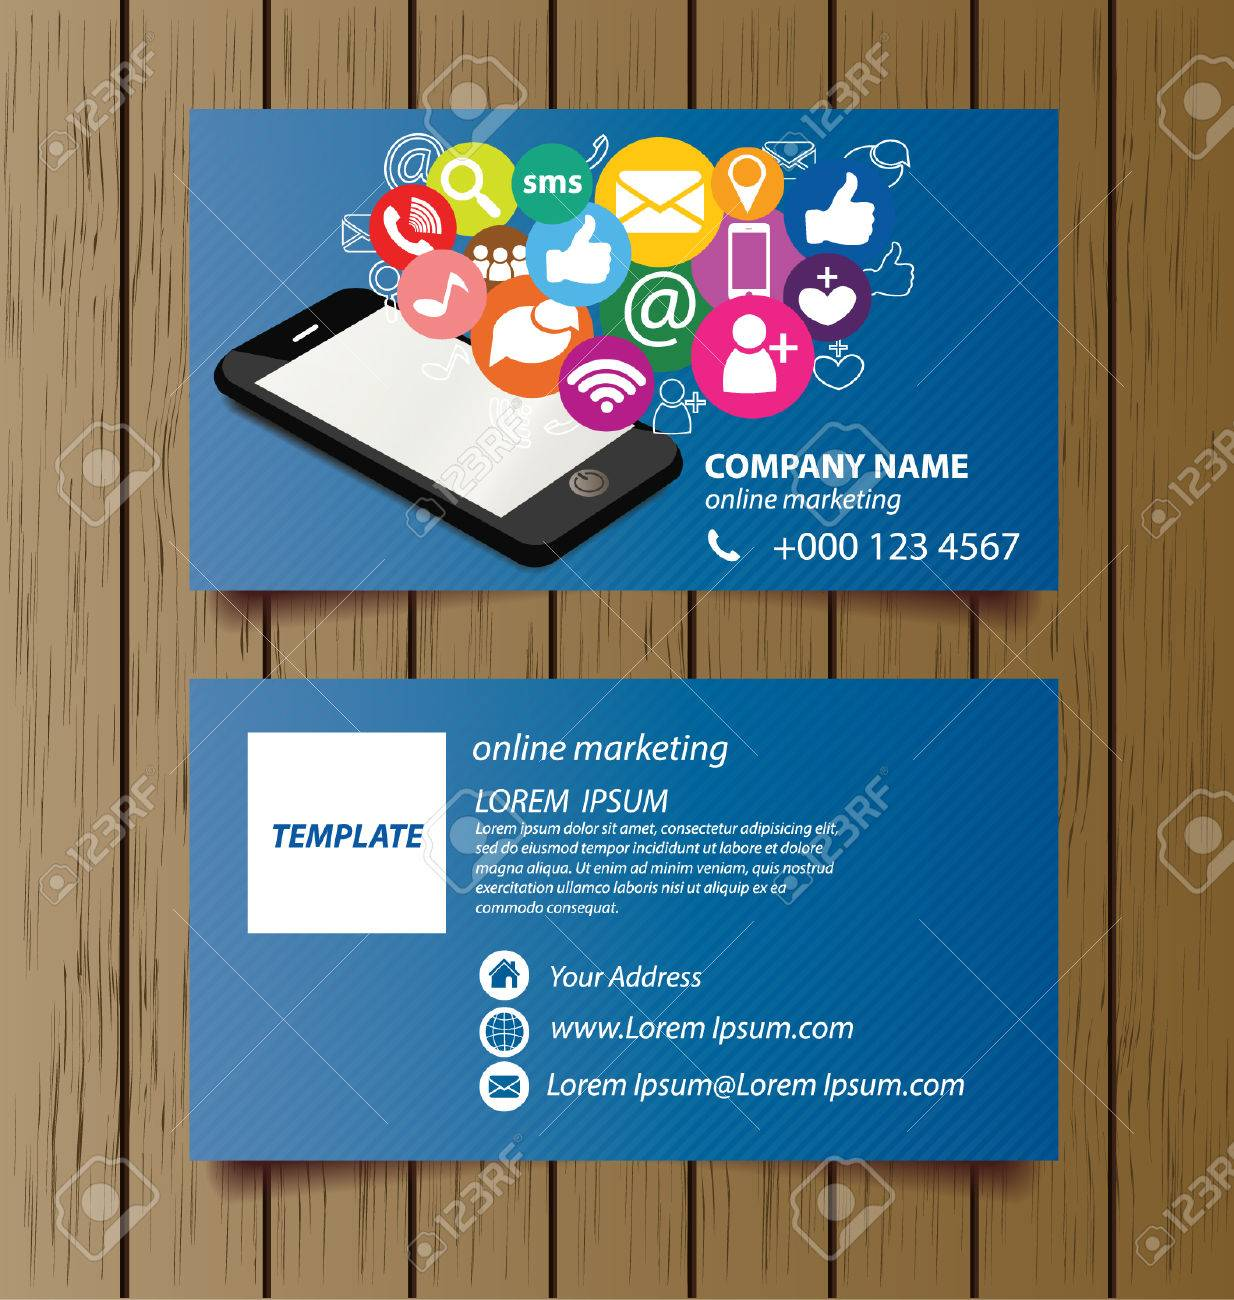 Business Card Template For Online Marketing Vector Royalty Free - Business cards online template